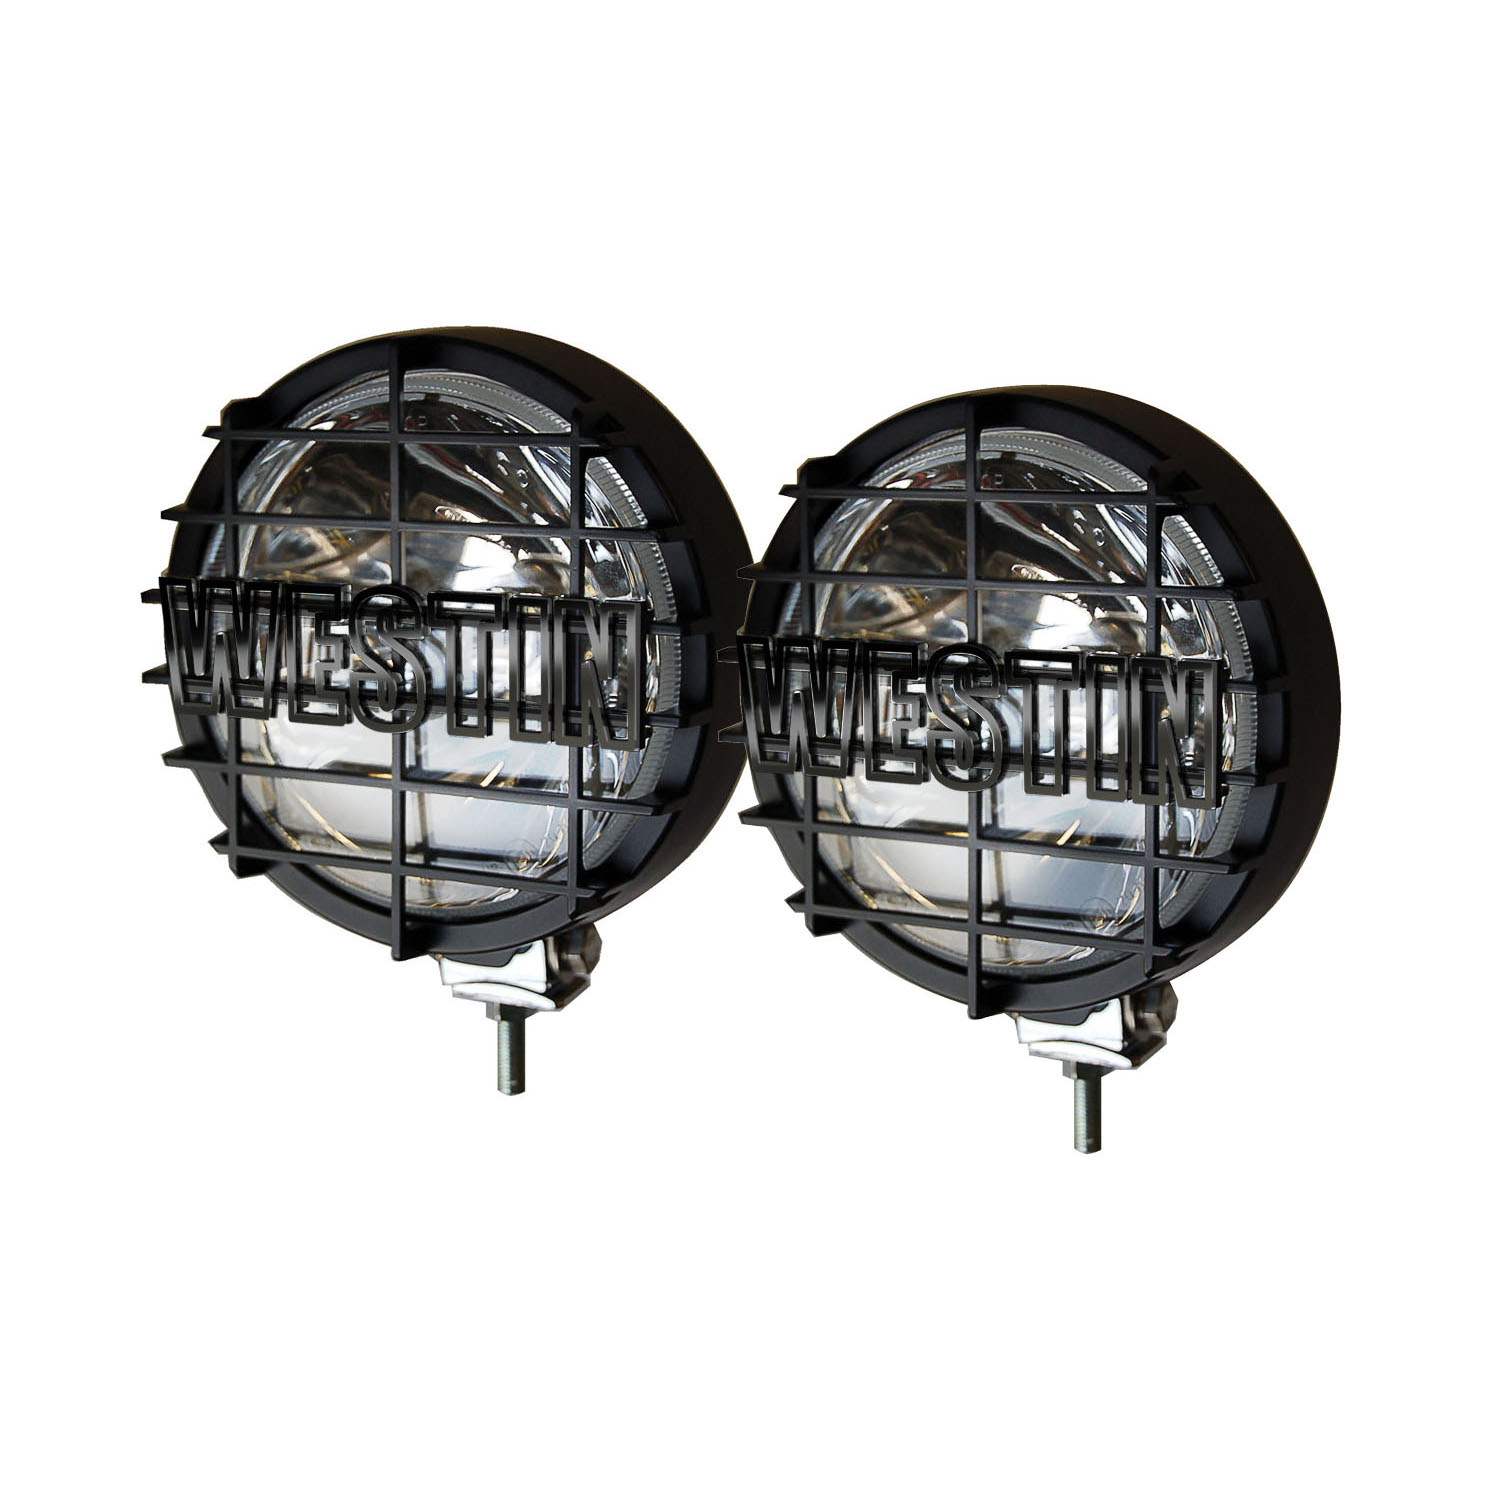 09-0505 Westin Automotive Driving/ Fog Light 6 Inch Round